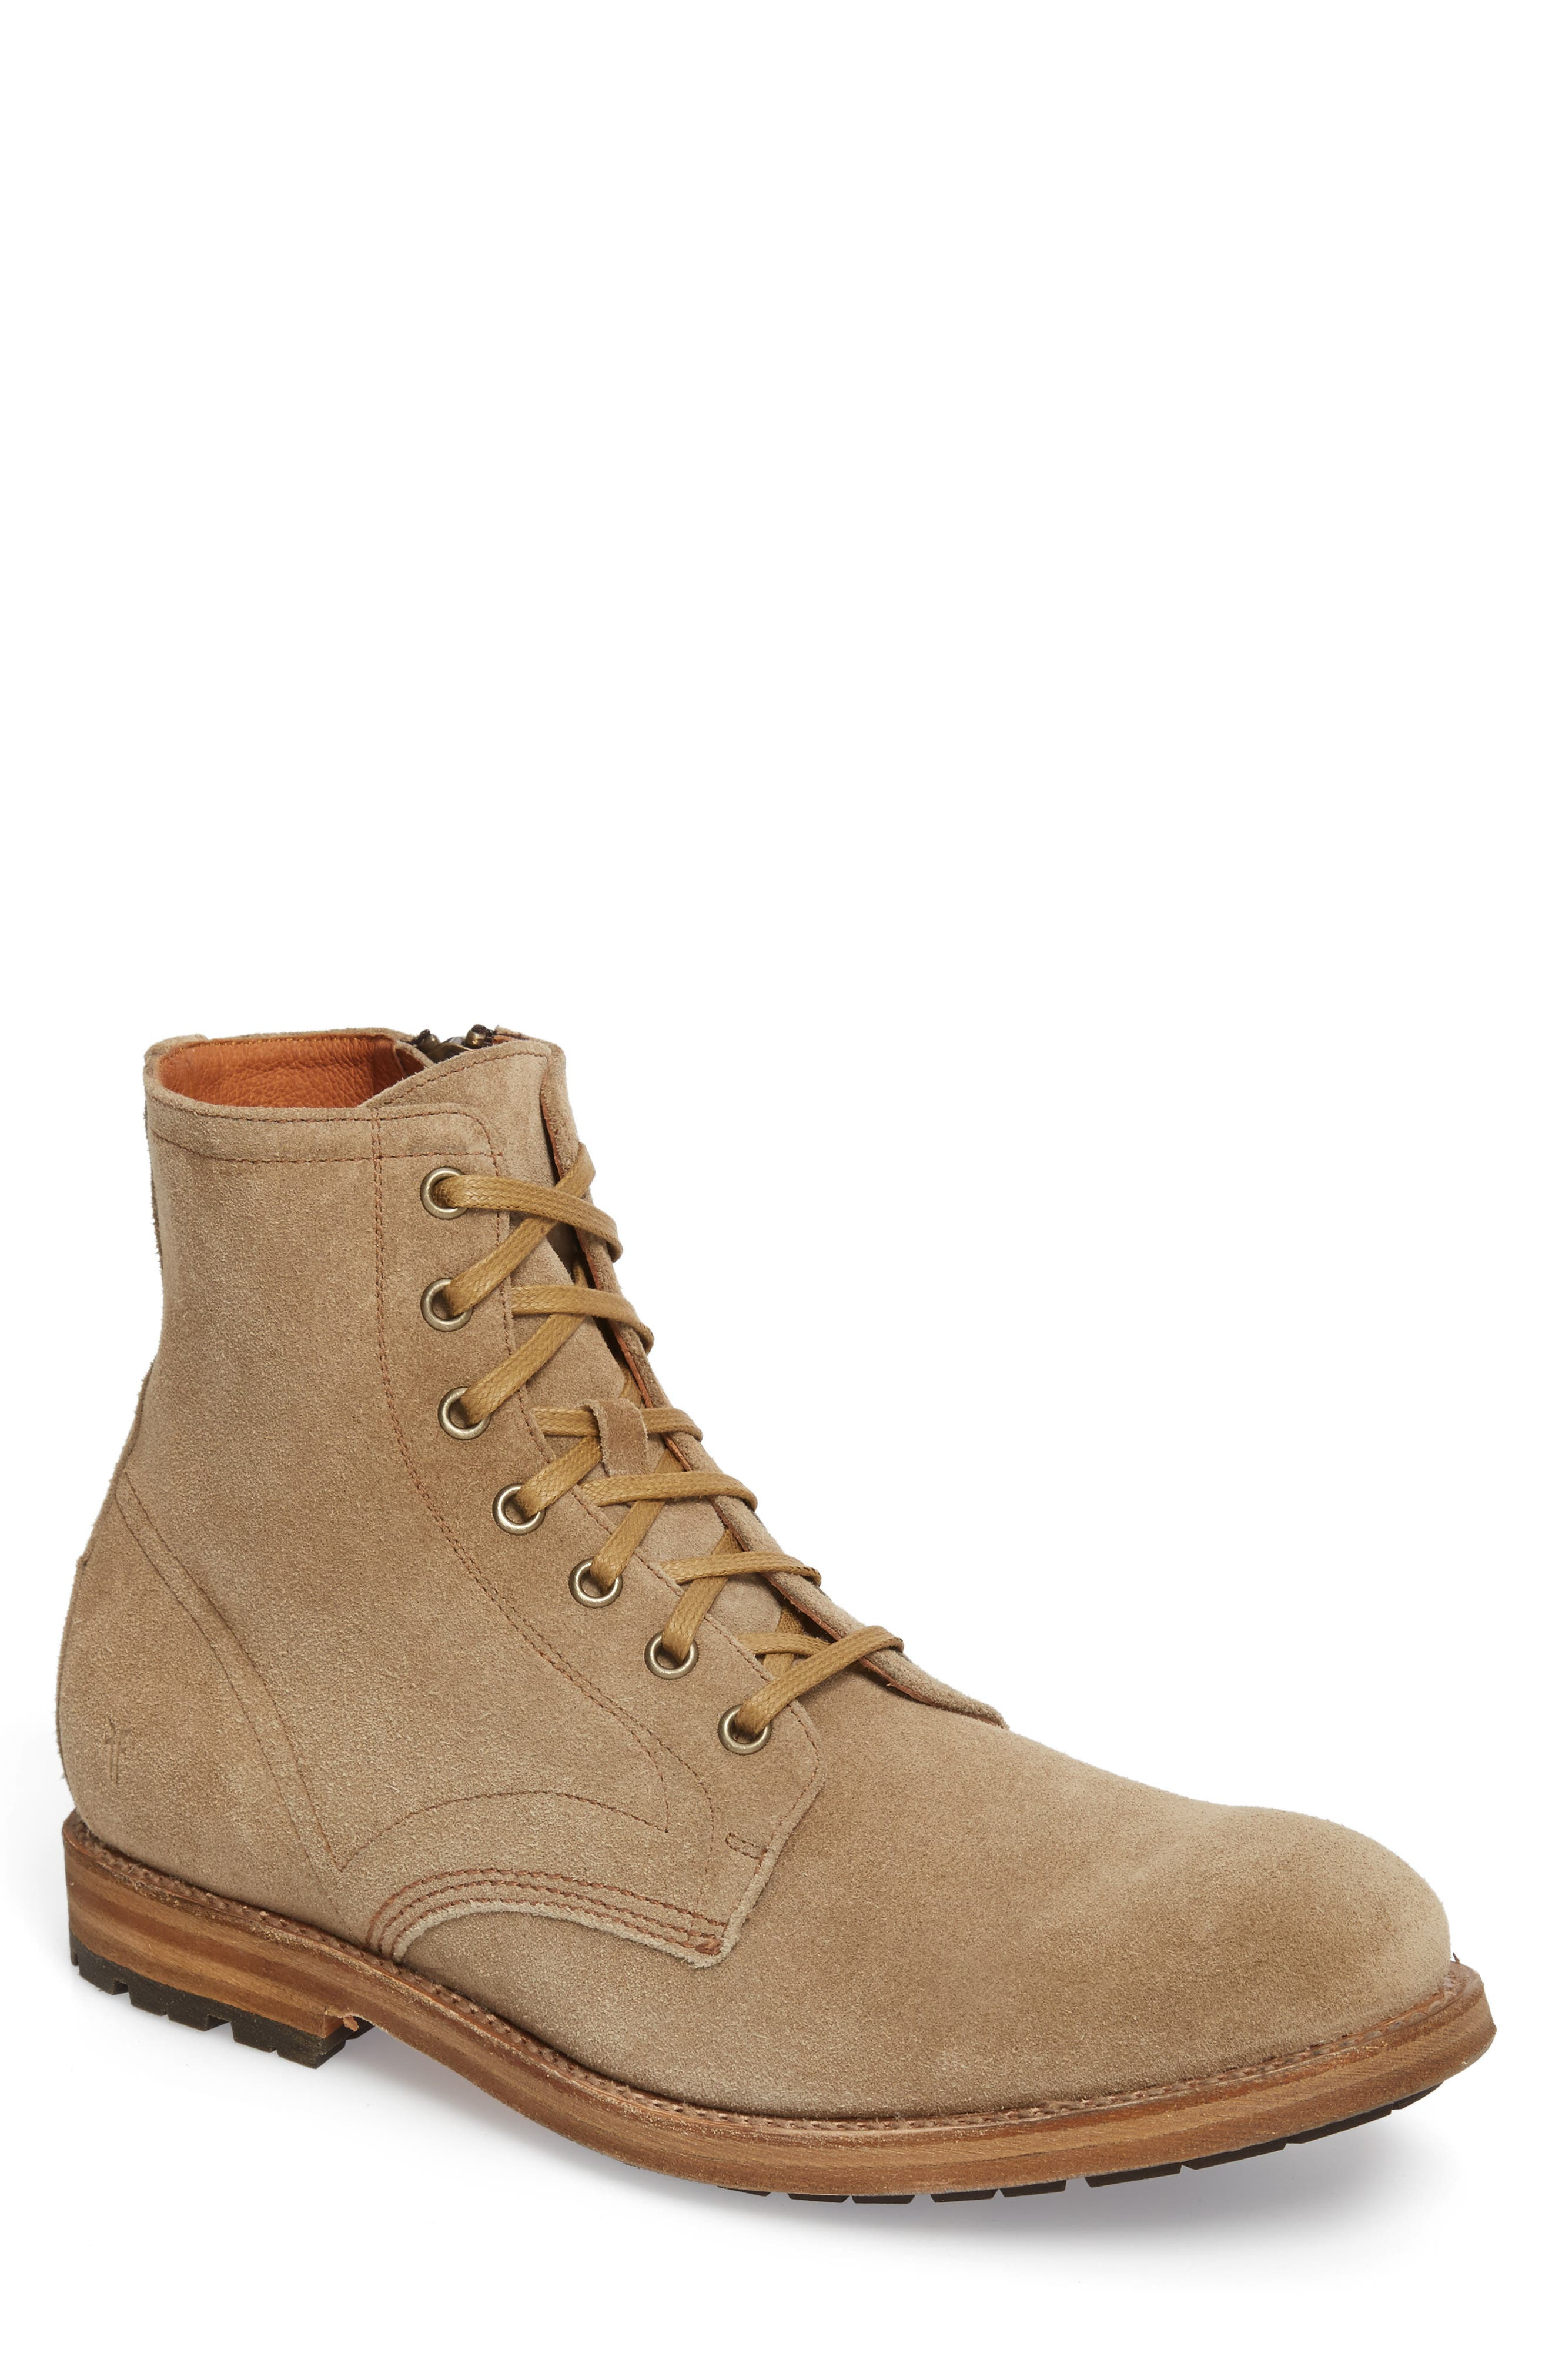 Fry Bowery Side Zip Combat Boot,                             Main thumbnail 1, color,                             Ash Suede